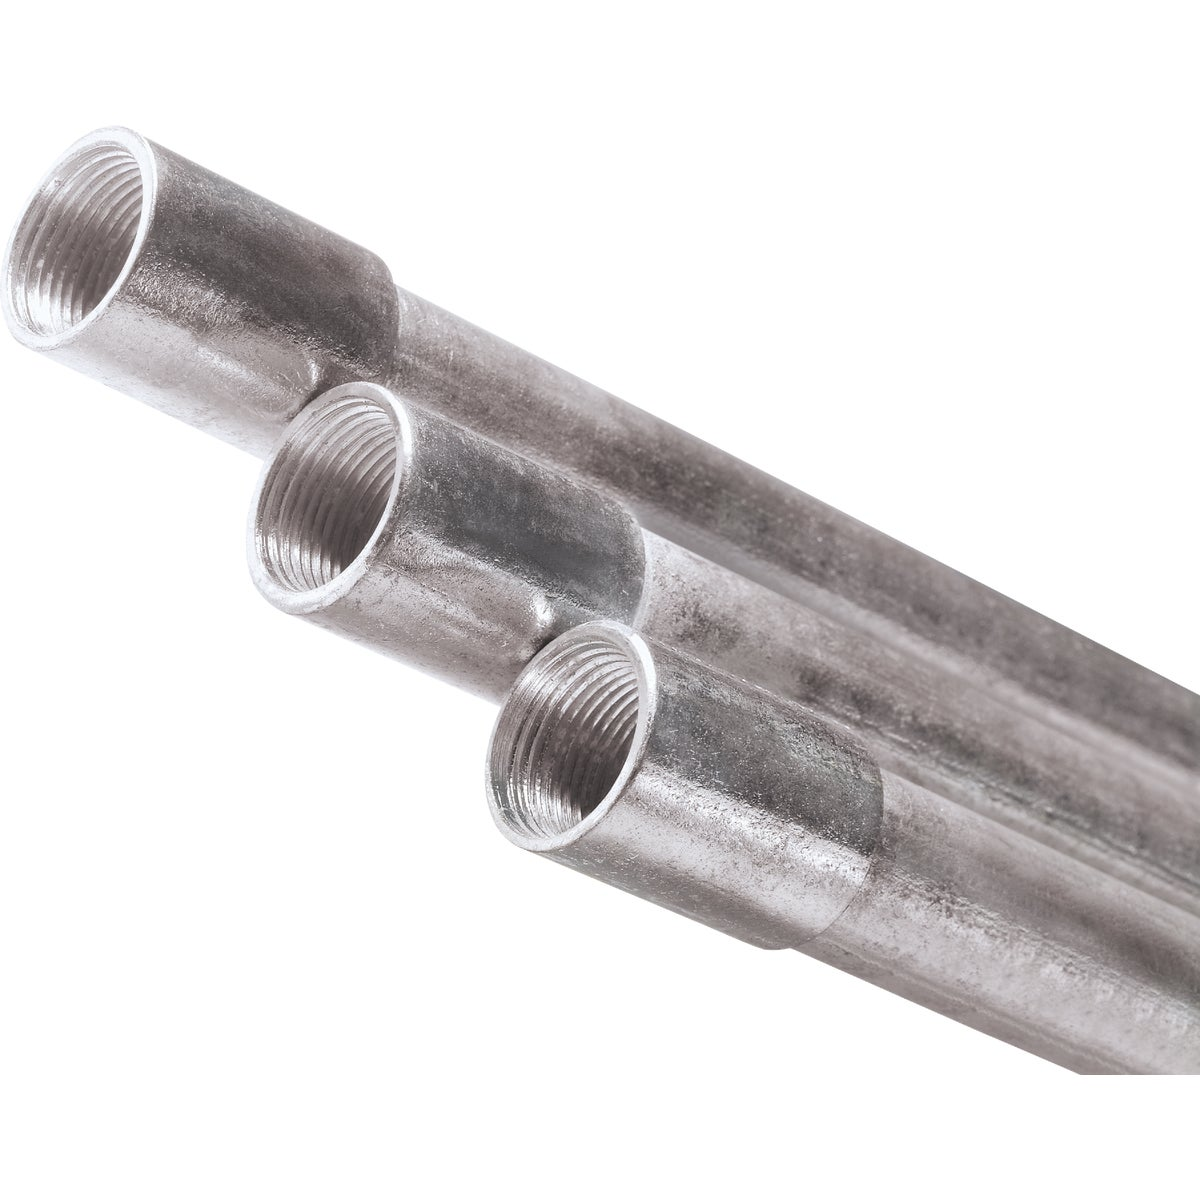 "1"" RIGID 10' CONDUIT - 103077 by Allied Tube  Atkore"